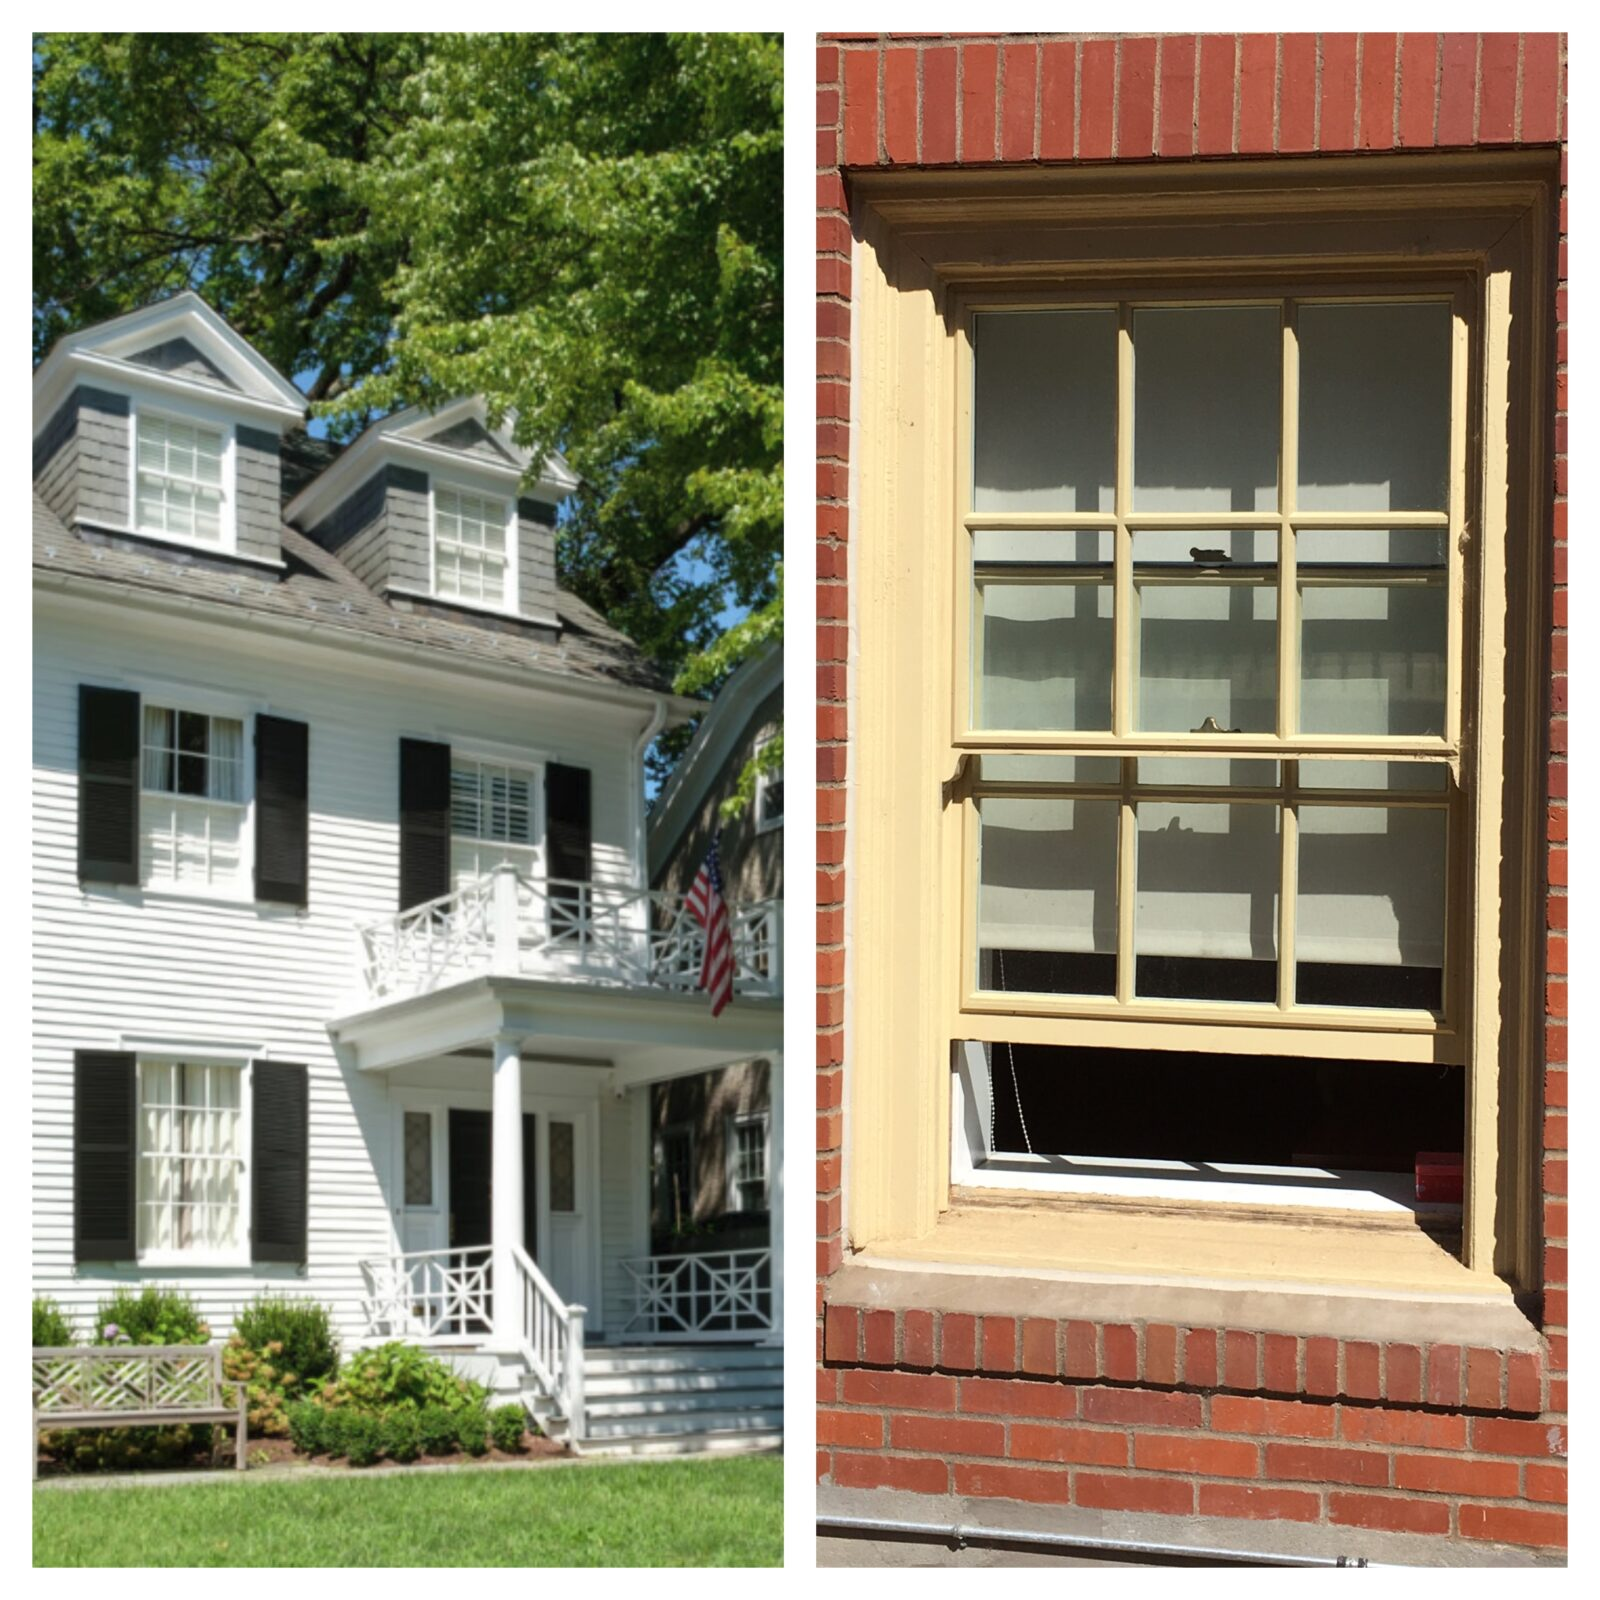 Save your vintage windows with SLIP